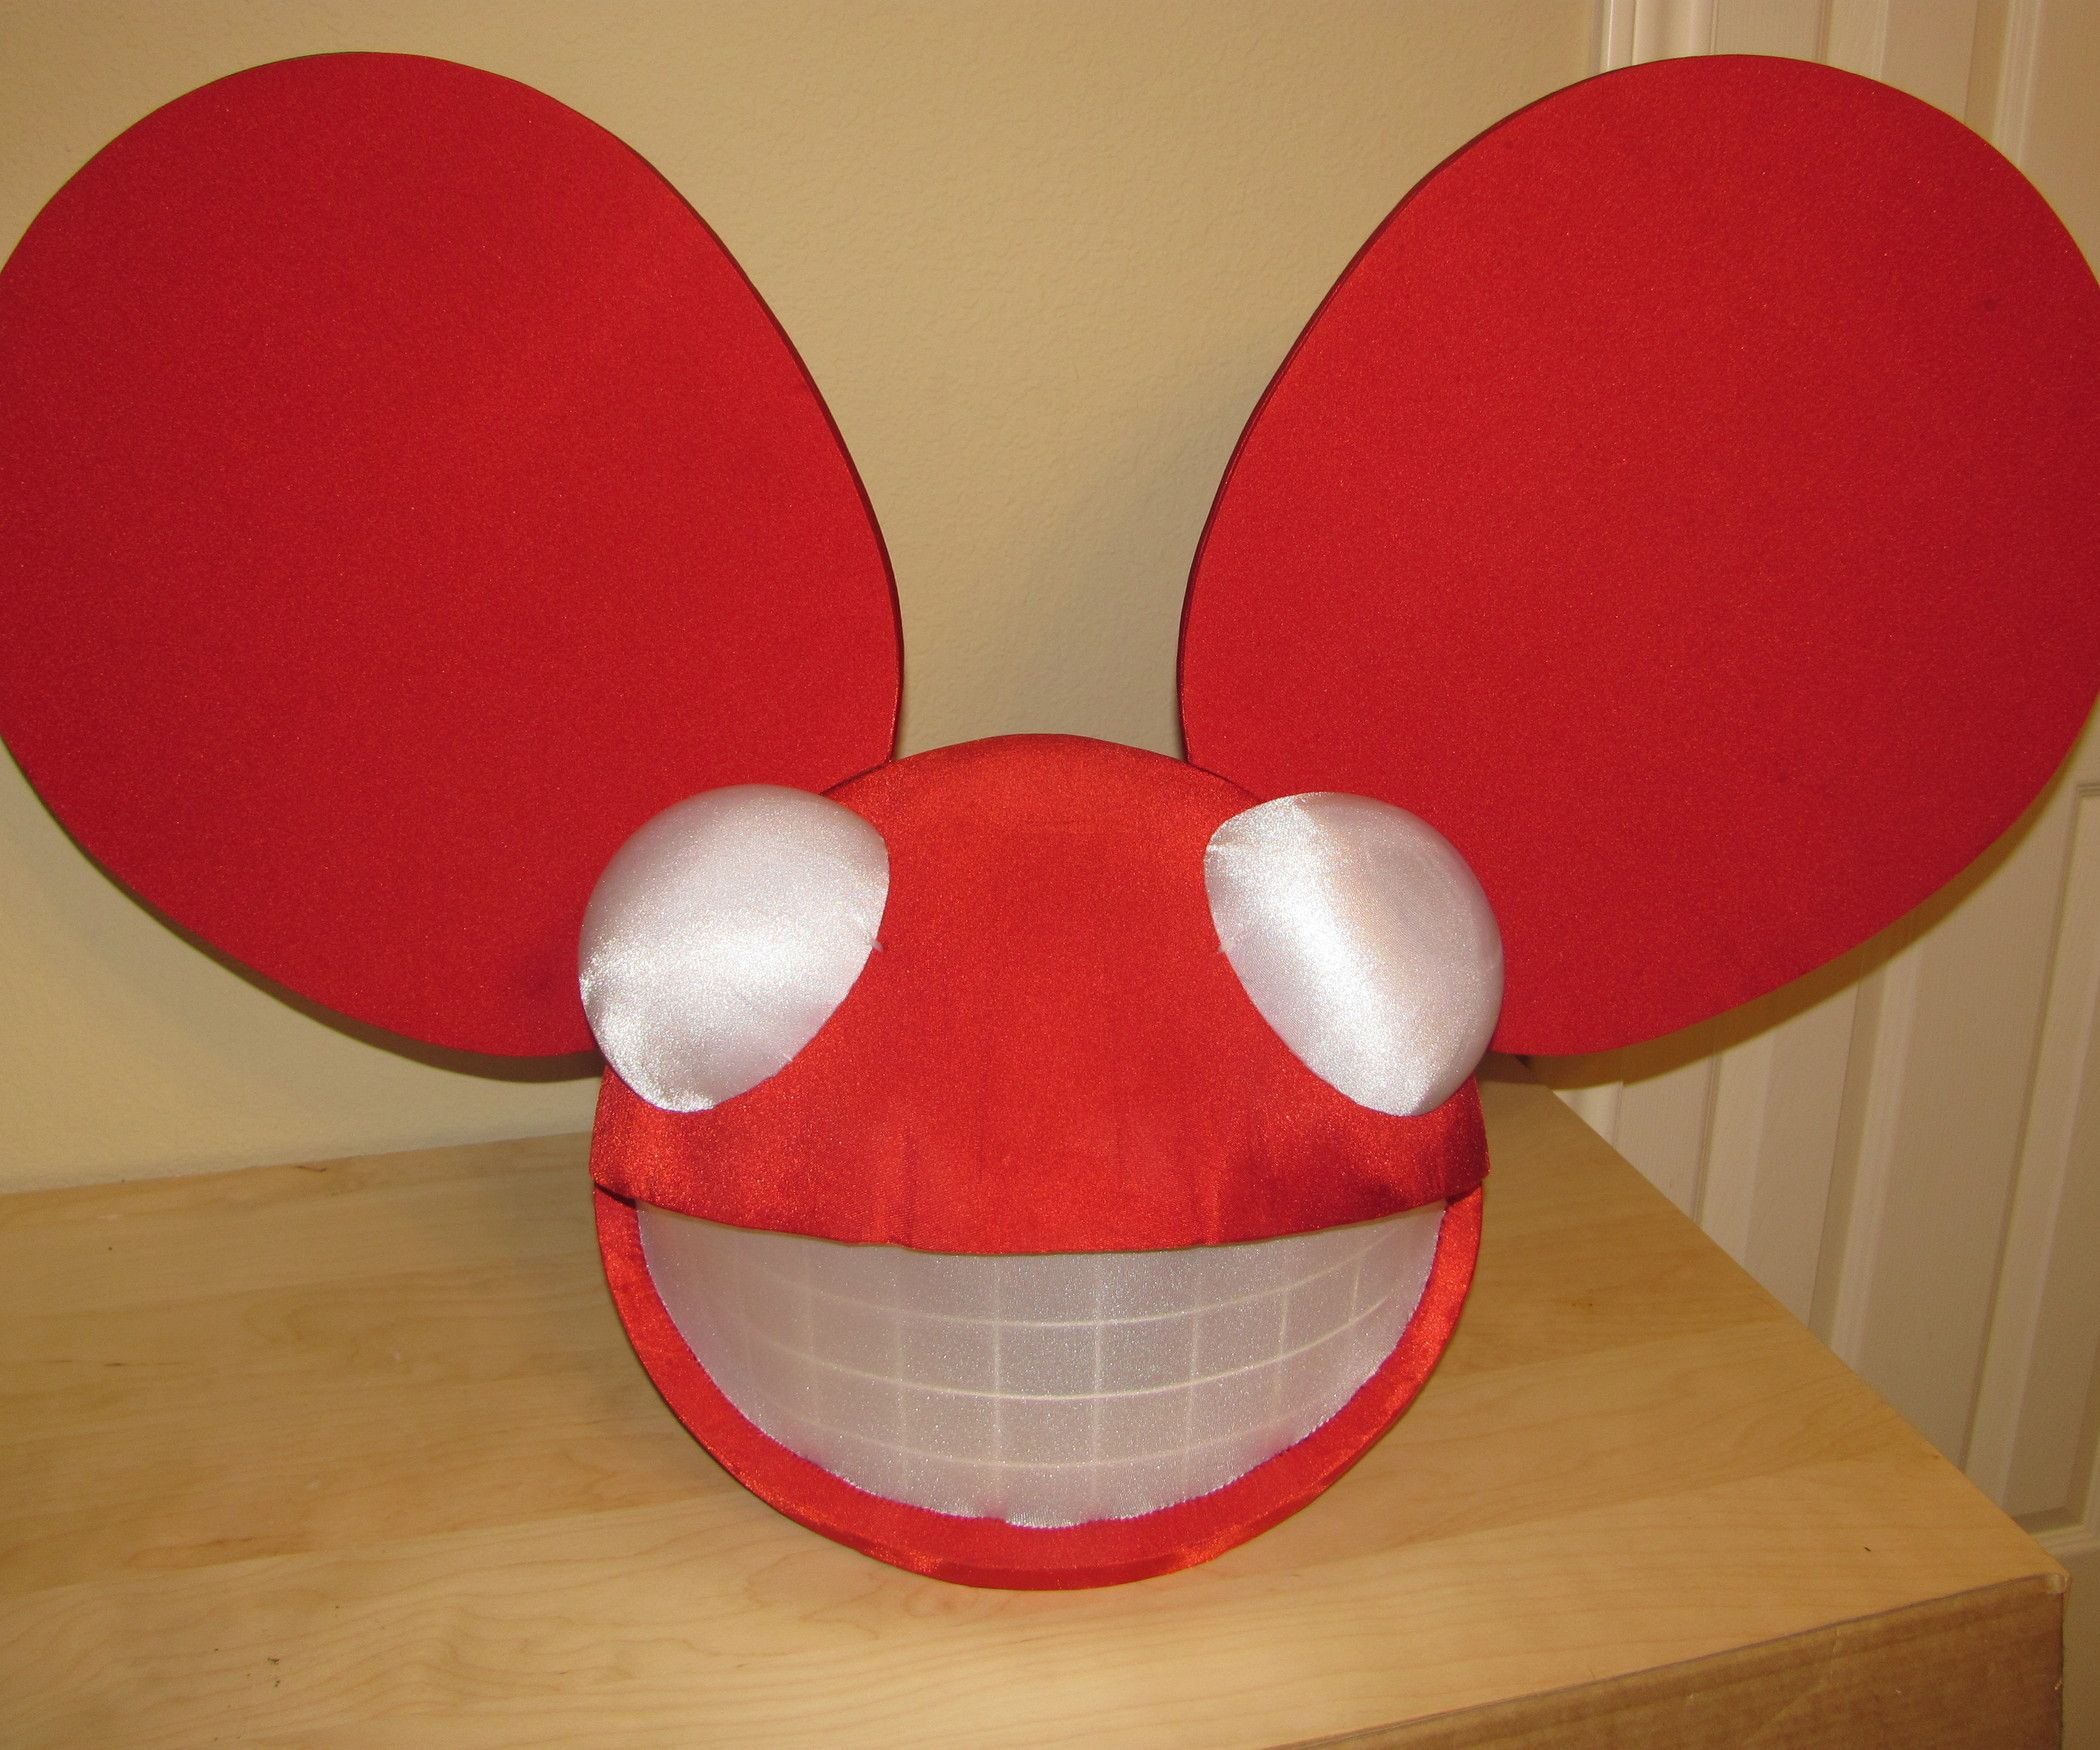 How To Build A Deadmau5 Head Deadmau5 Head Deadmau5 Costume Dead Mouse